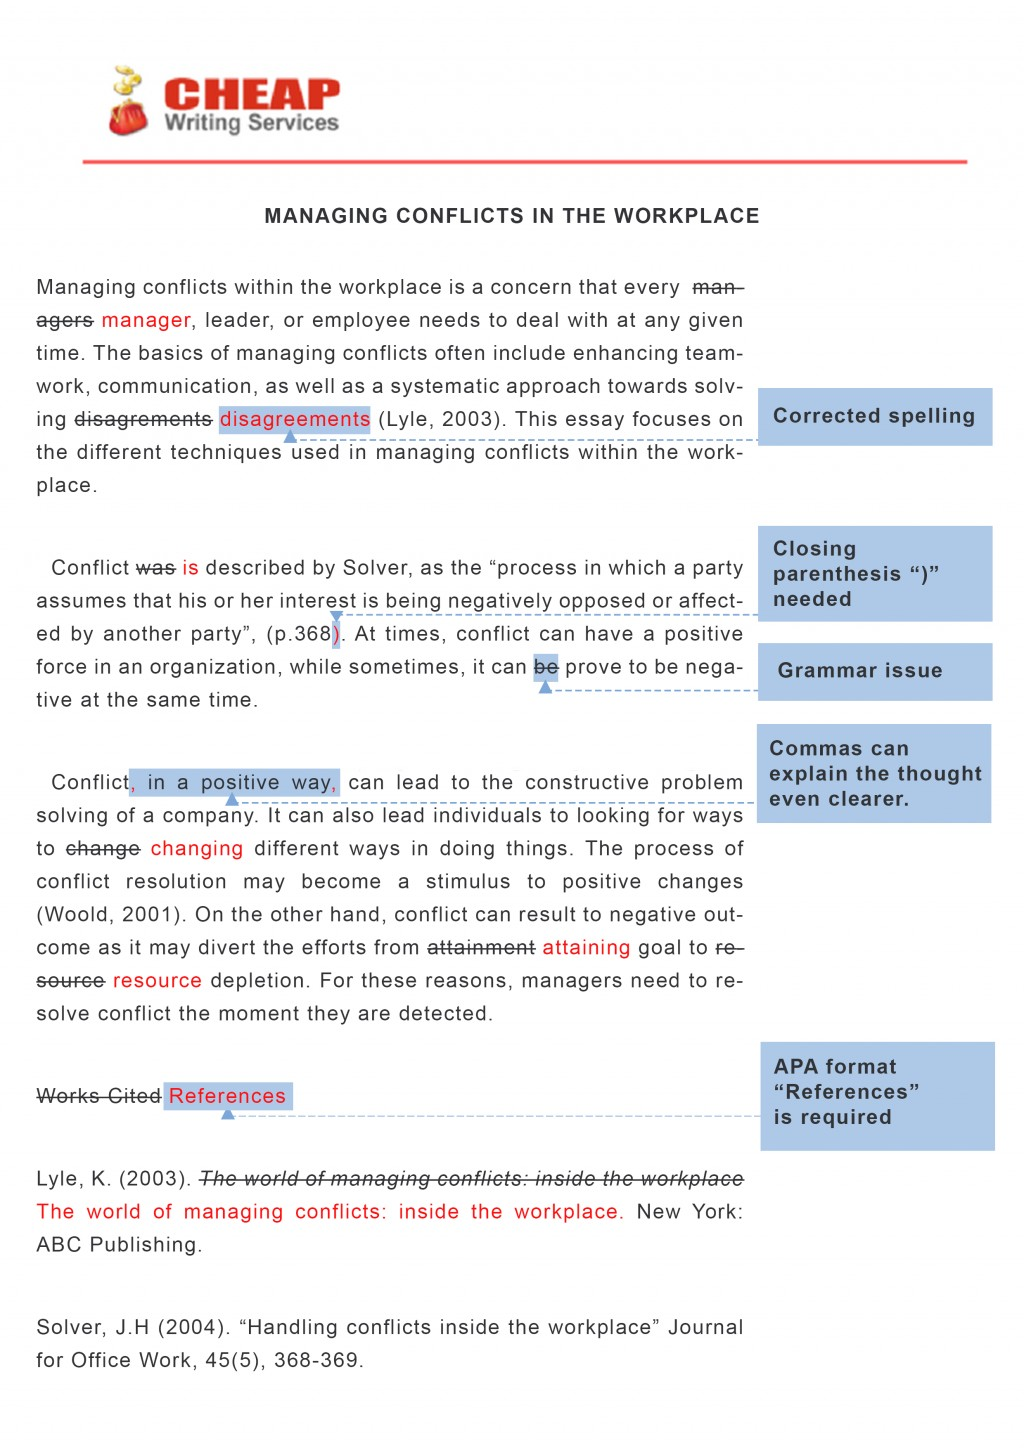 002 Essay Editing Example Cheap Beautiful Essays Paper Fast Essays.com Large